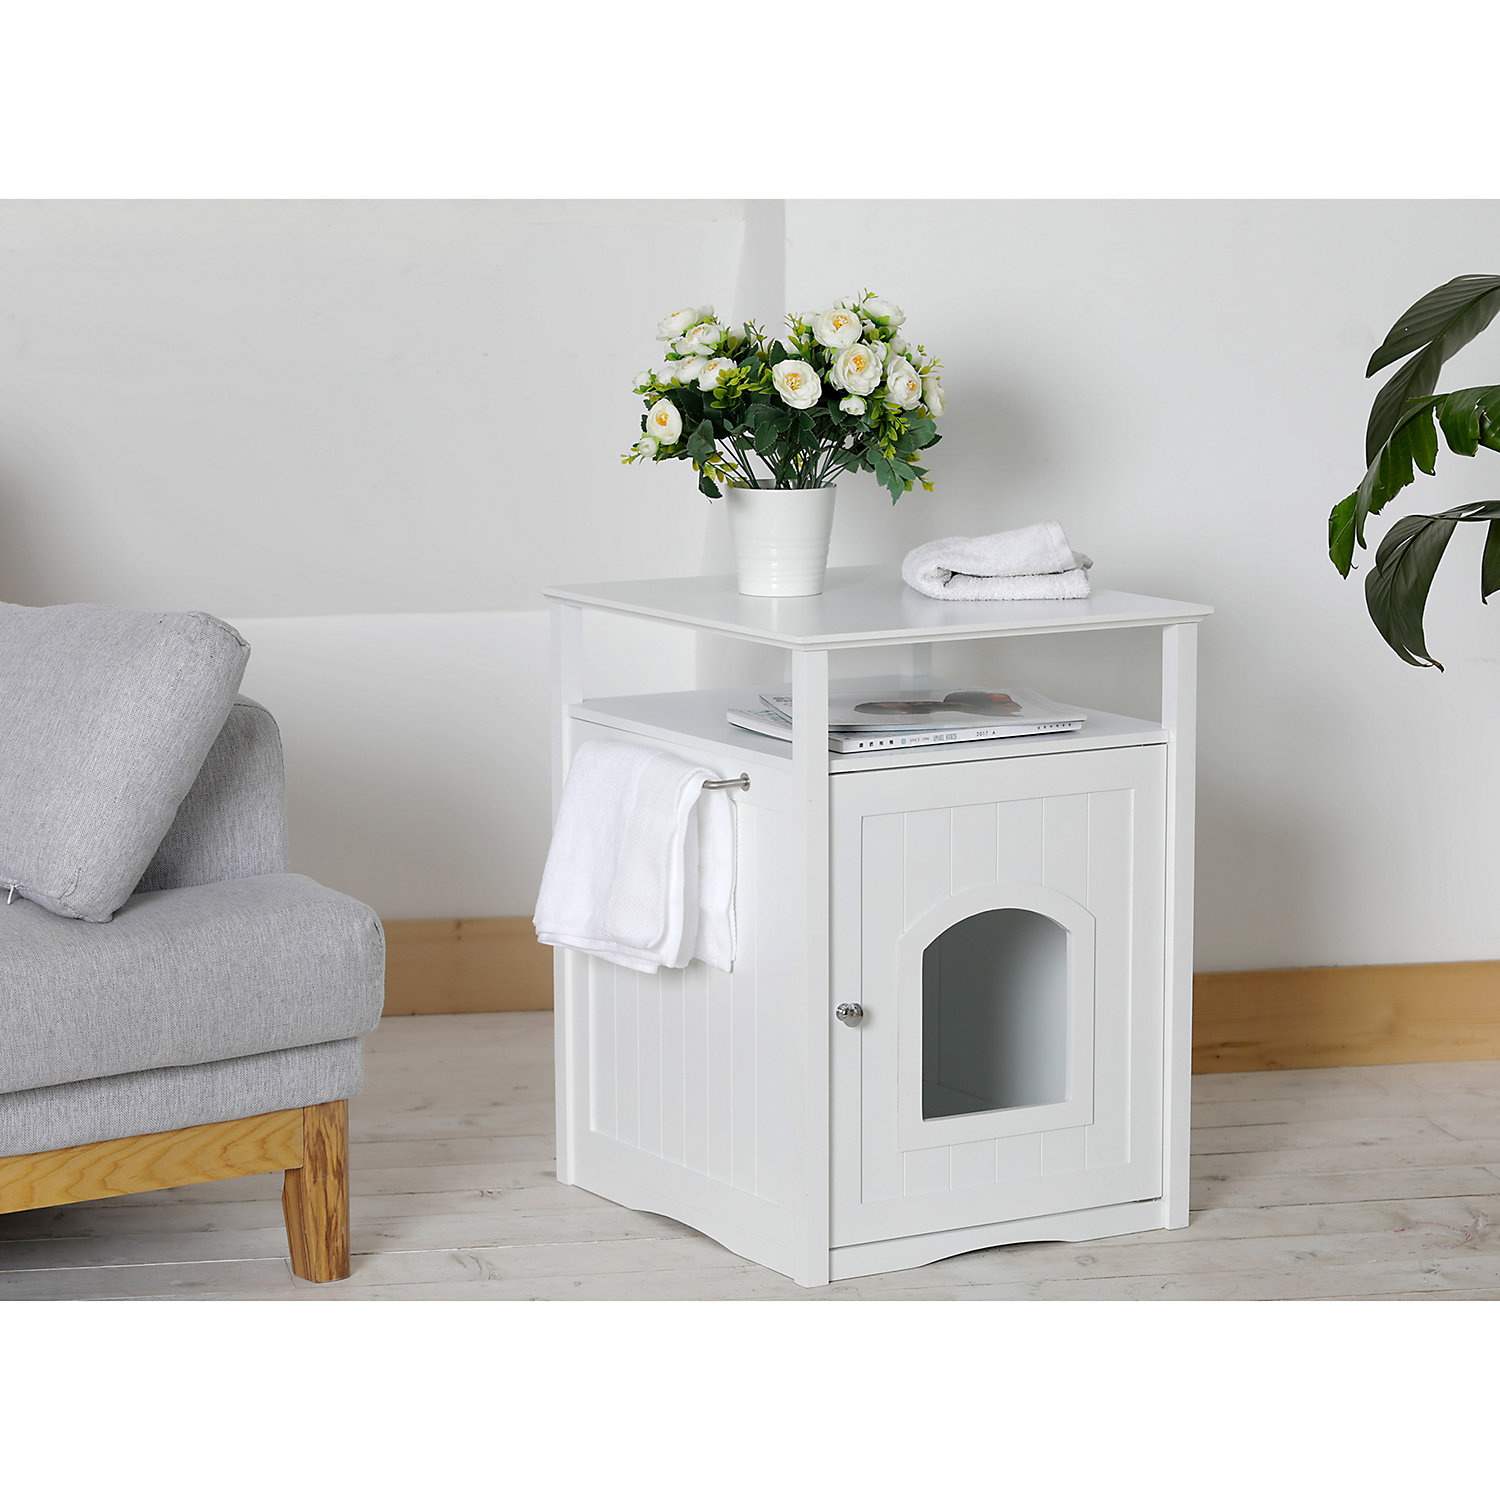 Merry Products Cat Washroom Night Stand Pet House In White